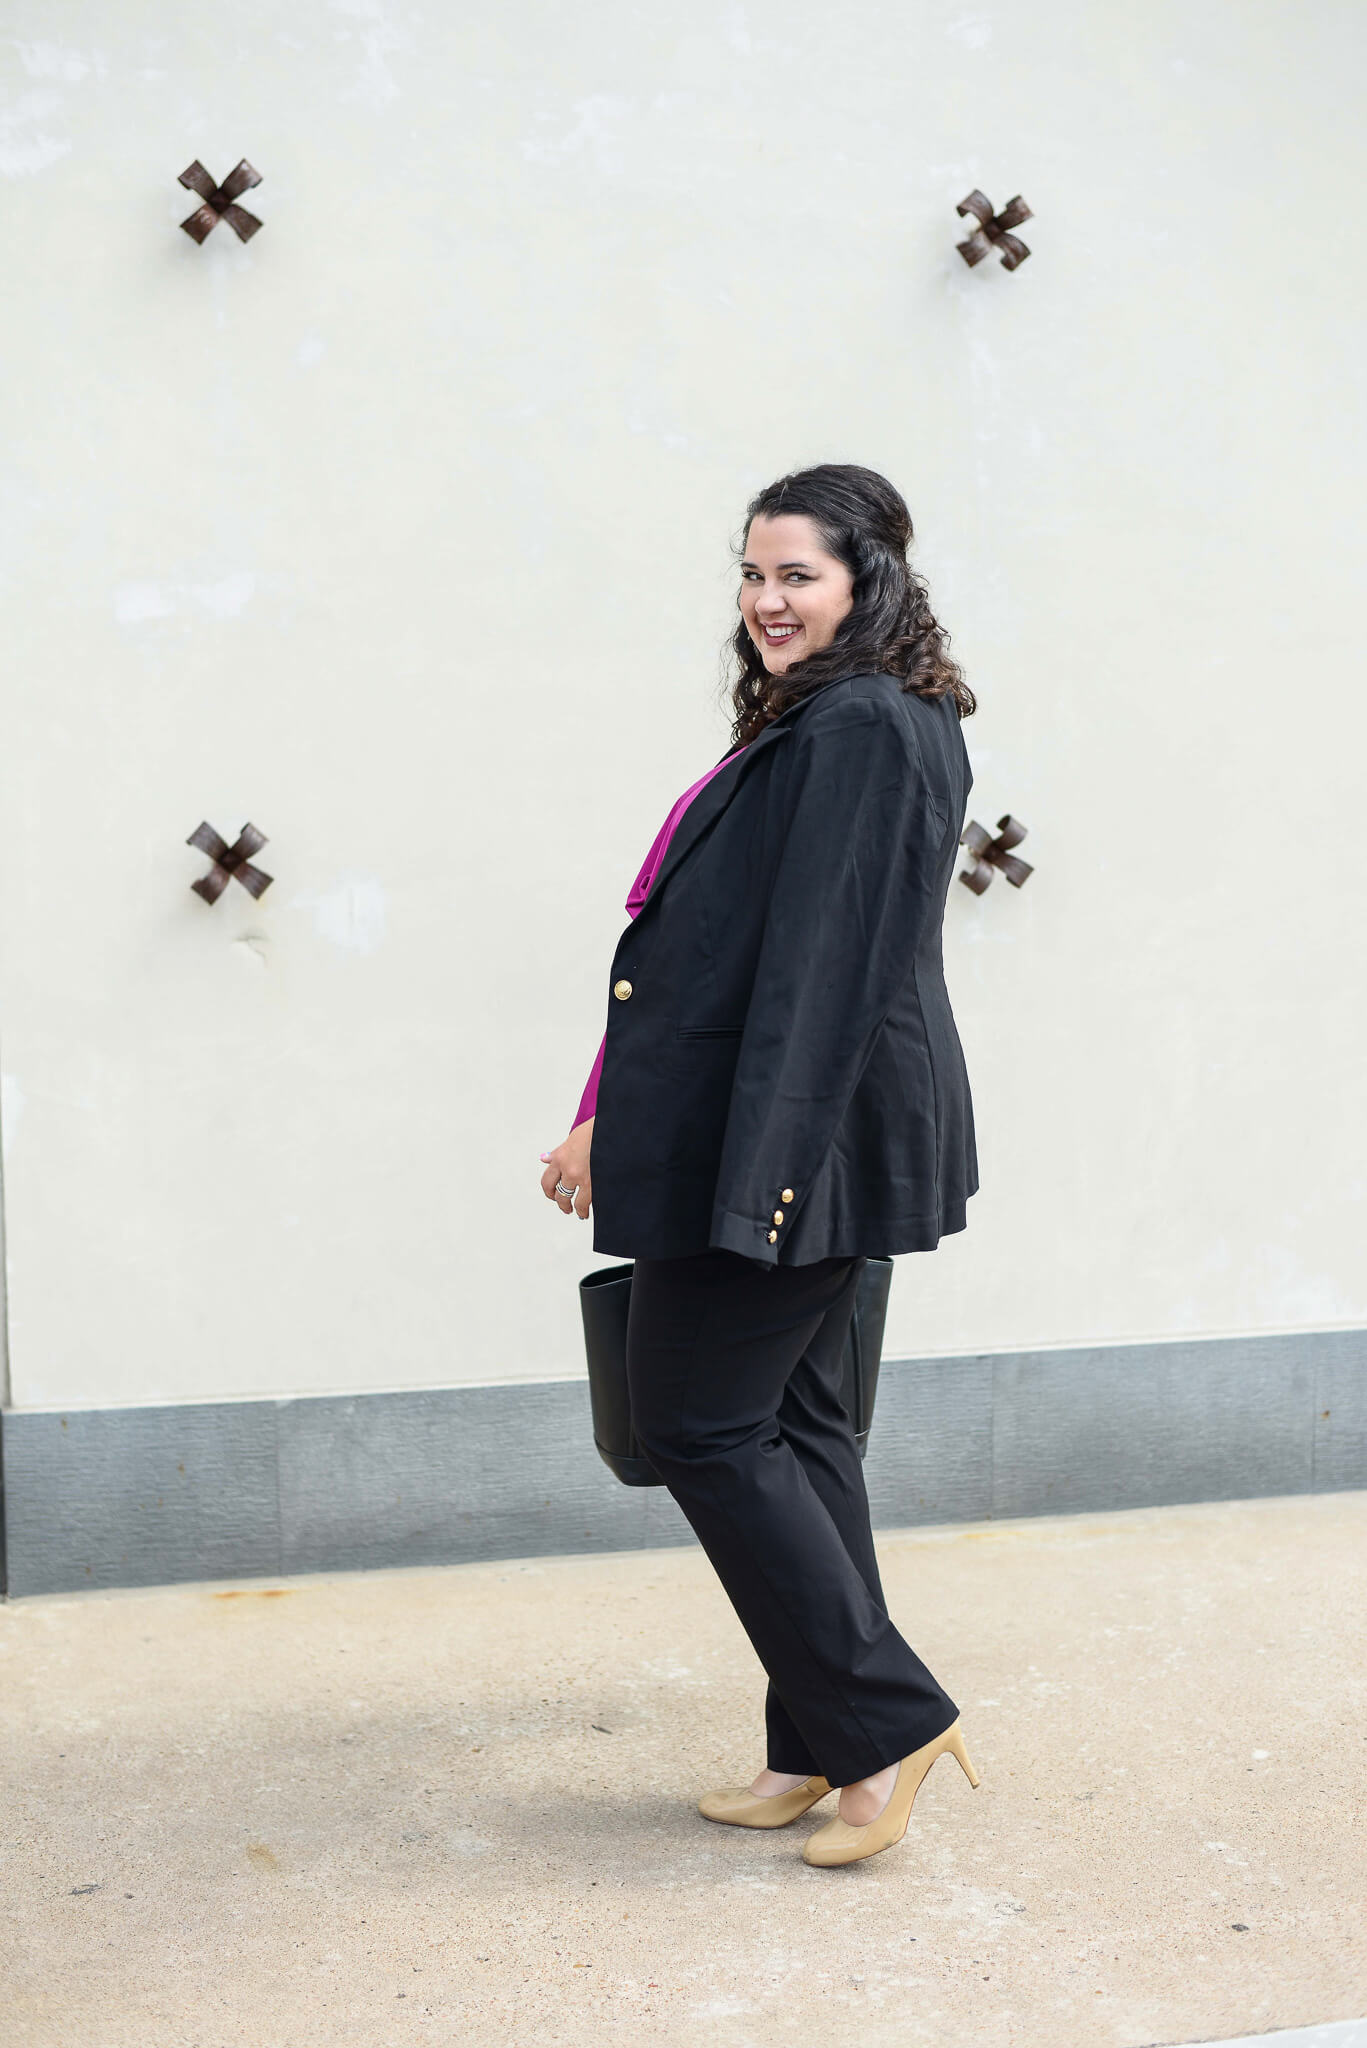 Finding a curvy work outfit has never been easier. Lane Bryant now has a dedicated work section to find the pieces that work best for your office environment.